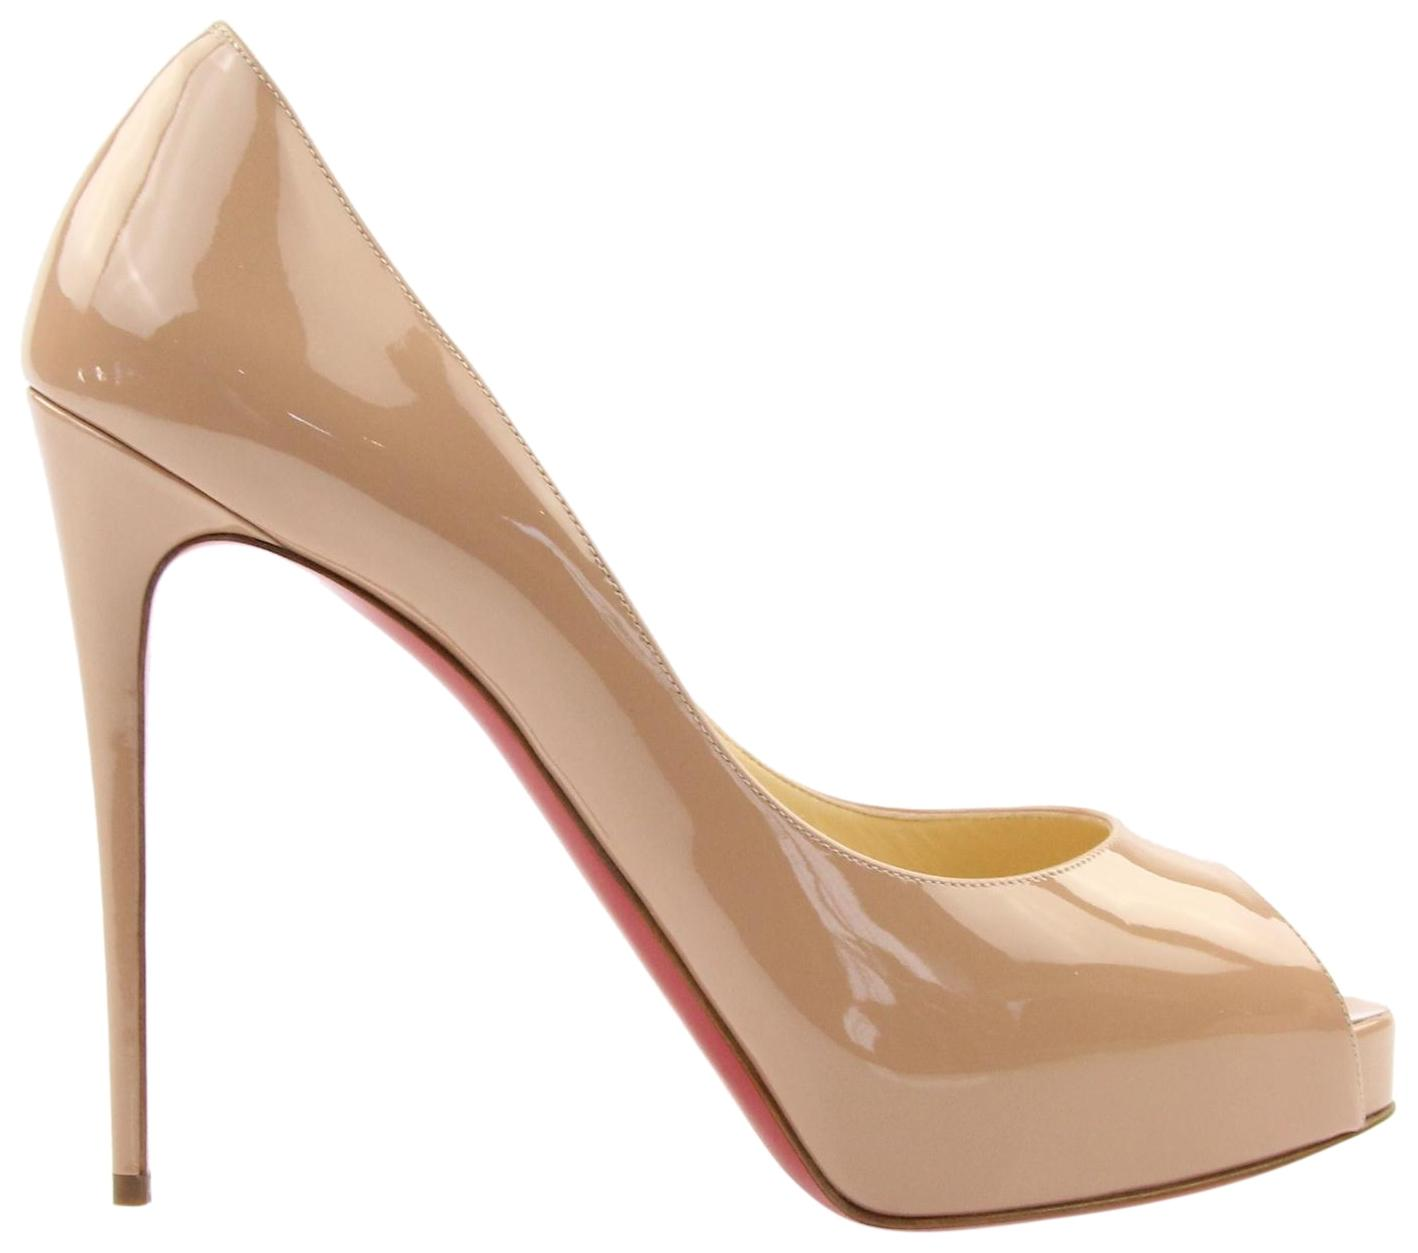 Christian Louboutin Nude New Very Prive 120 Patent Pumps Size EU 42 (Approx. US 12) Regular (M, B)